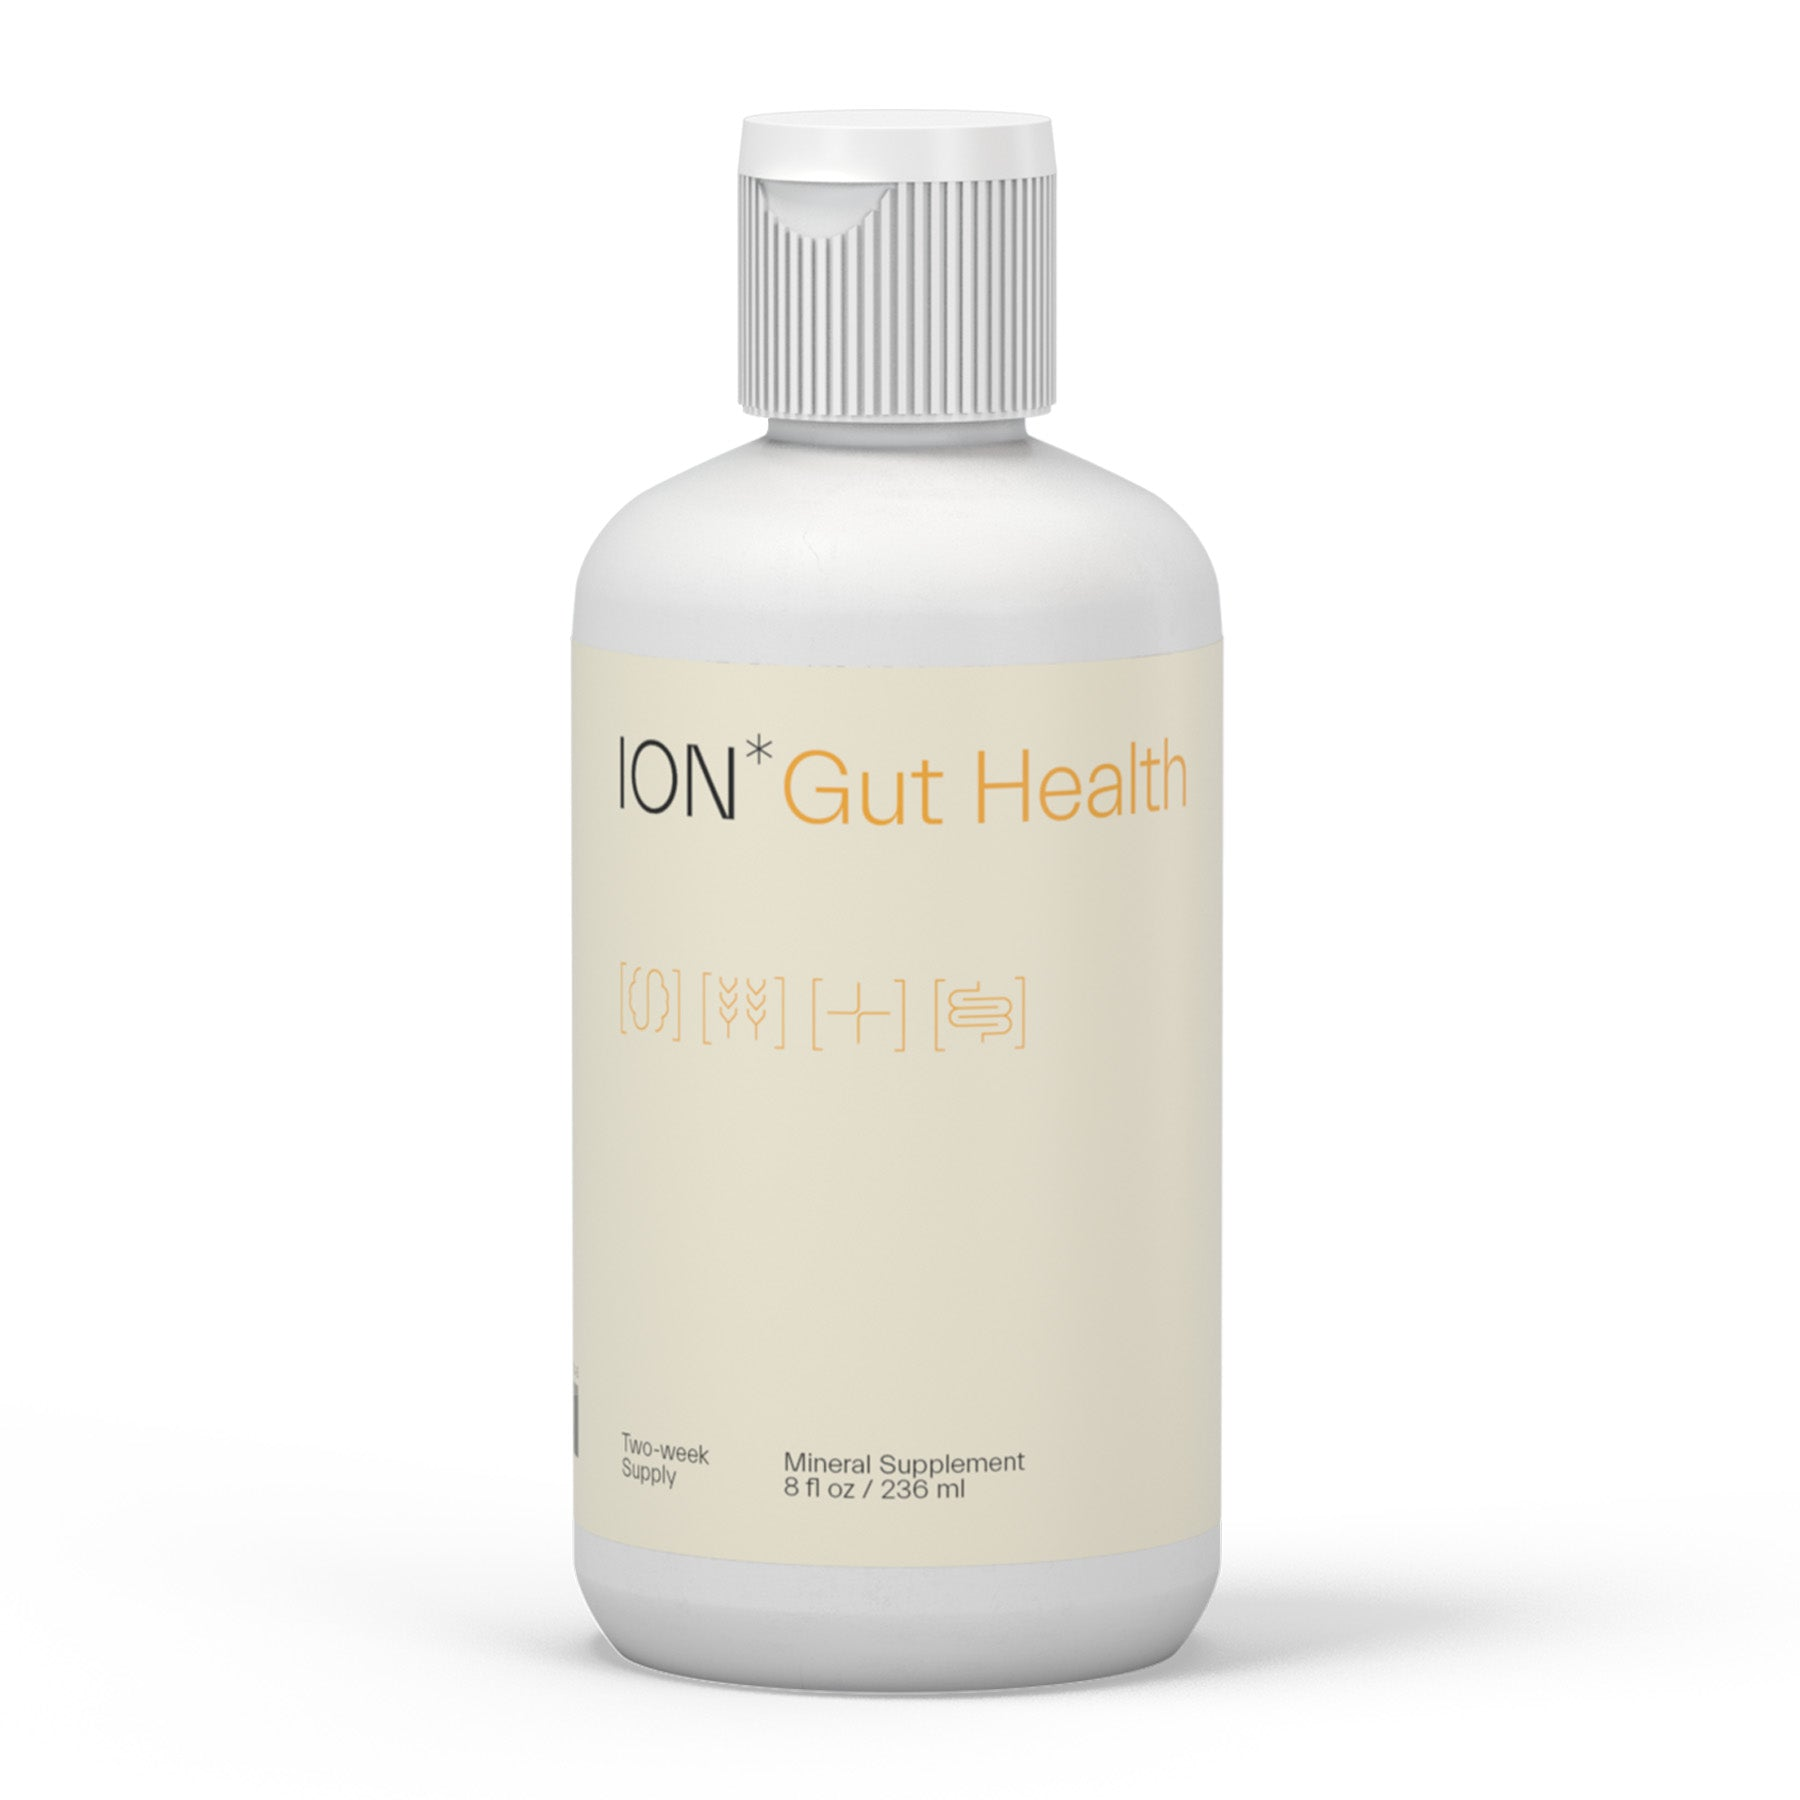 ION*Gut Health 8oz